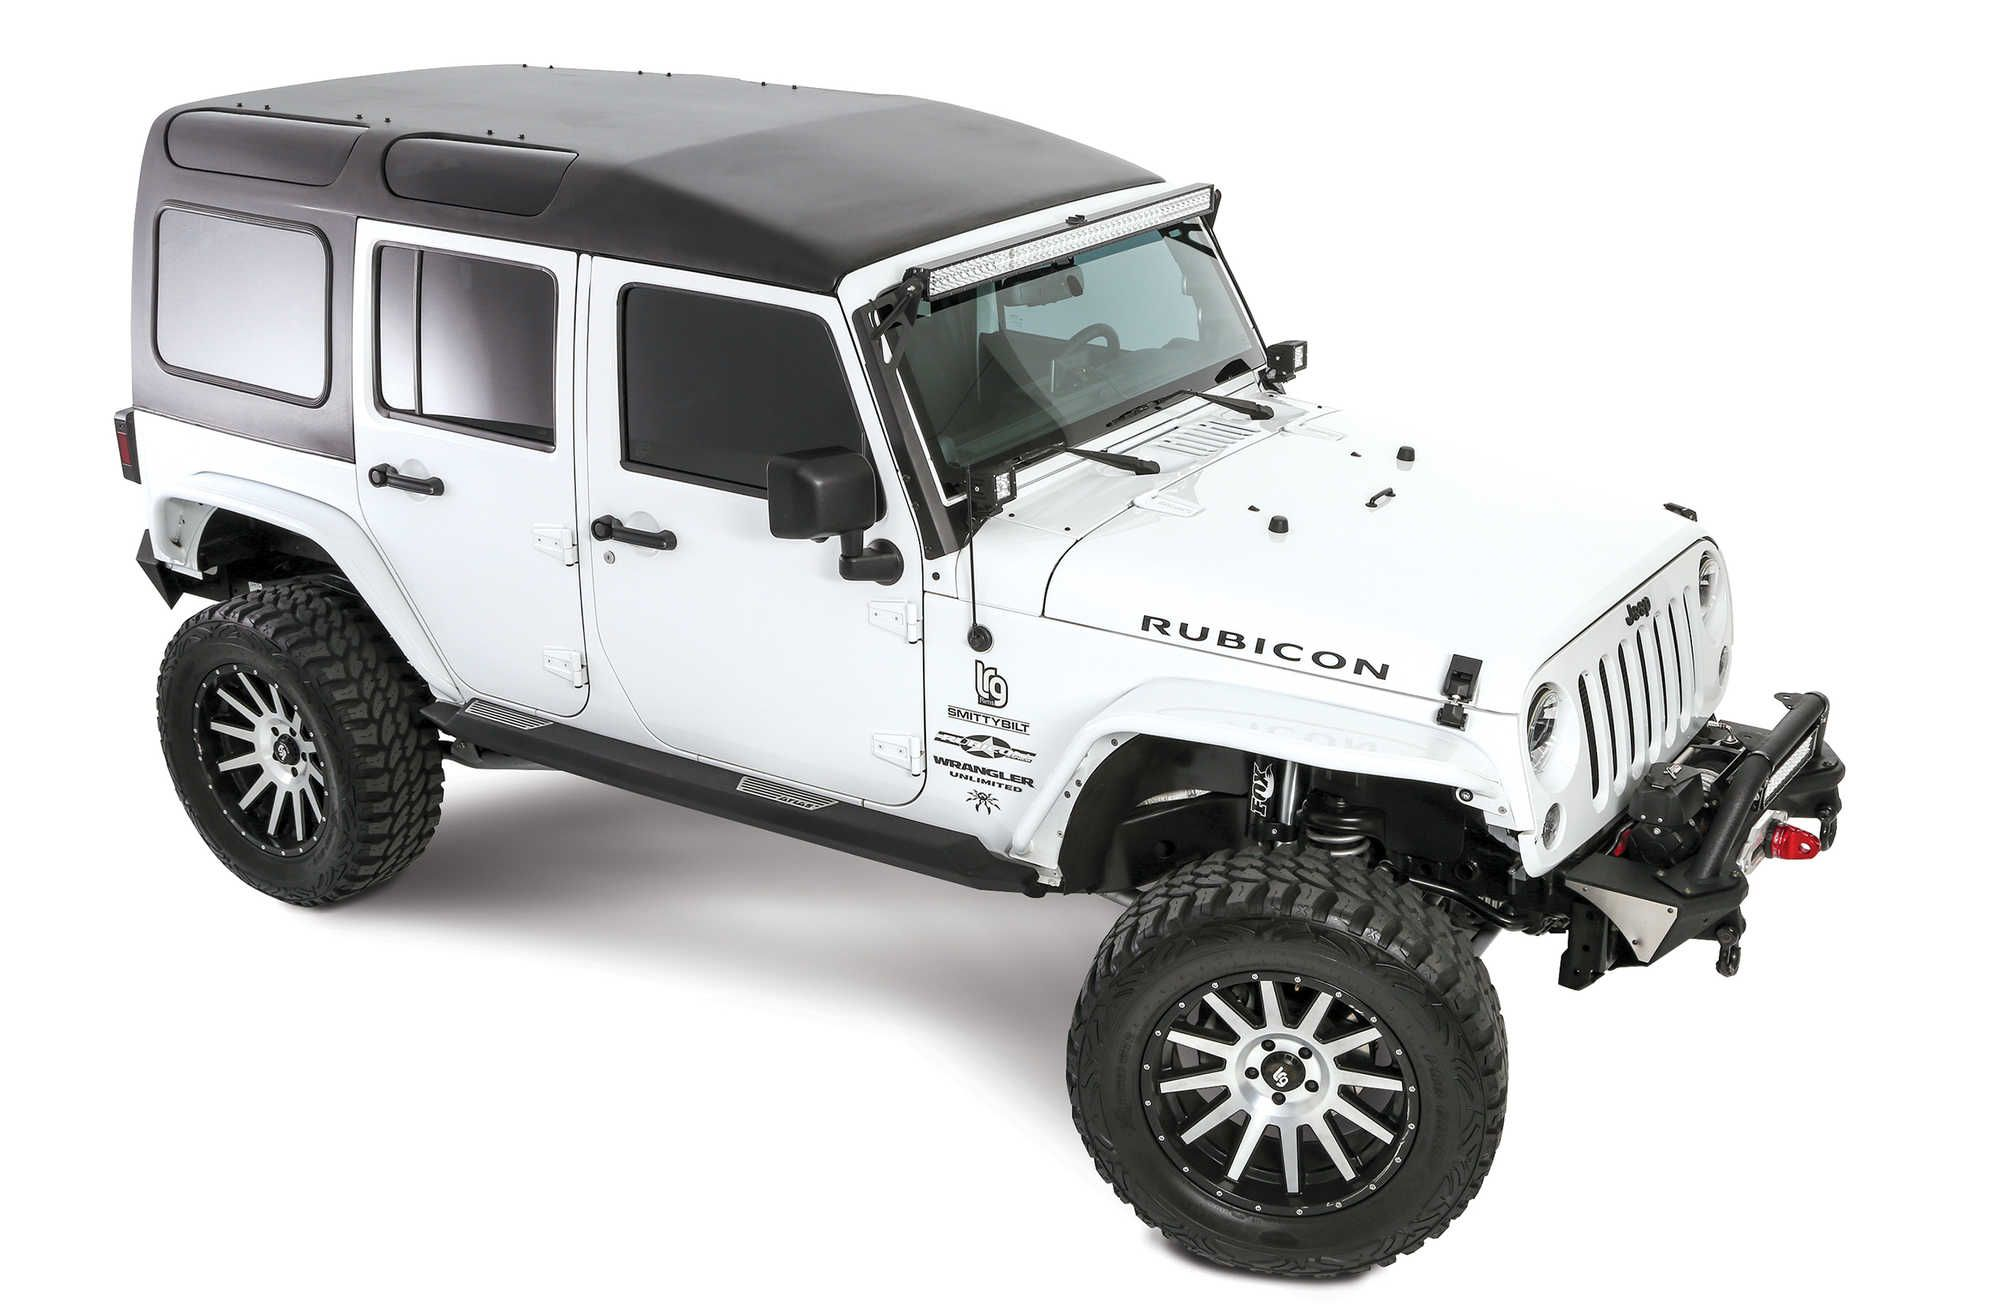 Introducing the next generation of hardtop for jk wranglers this unique one piece design